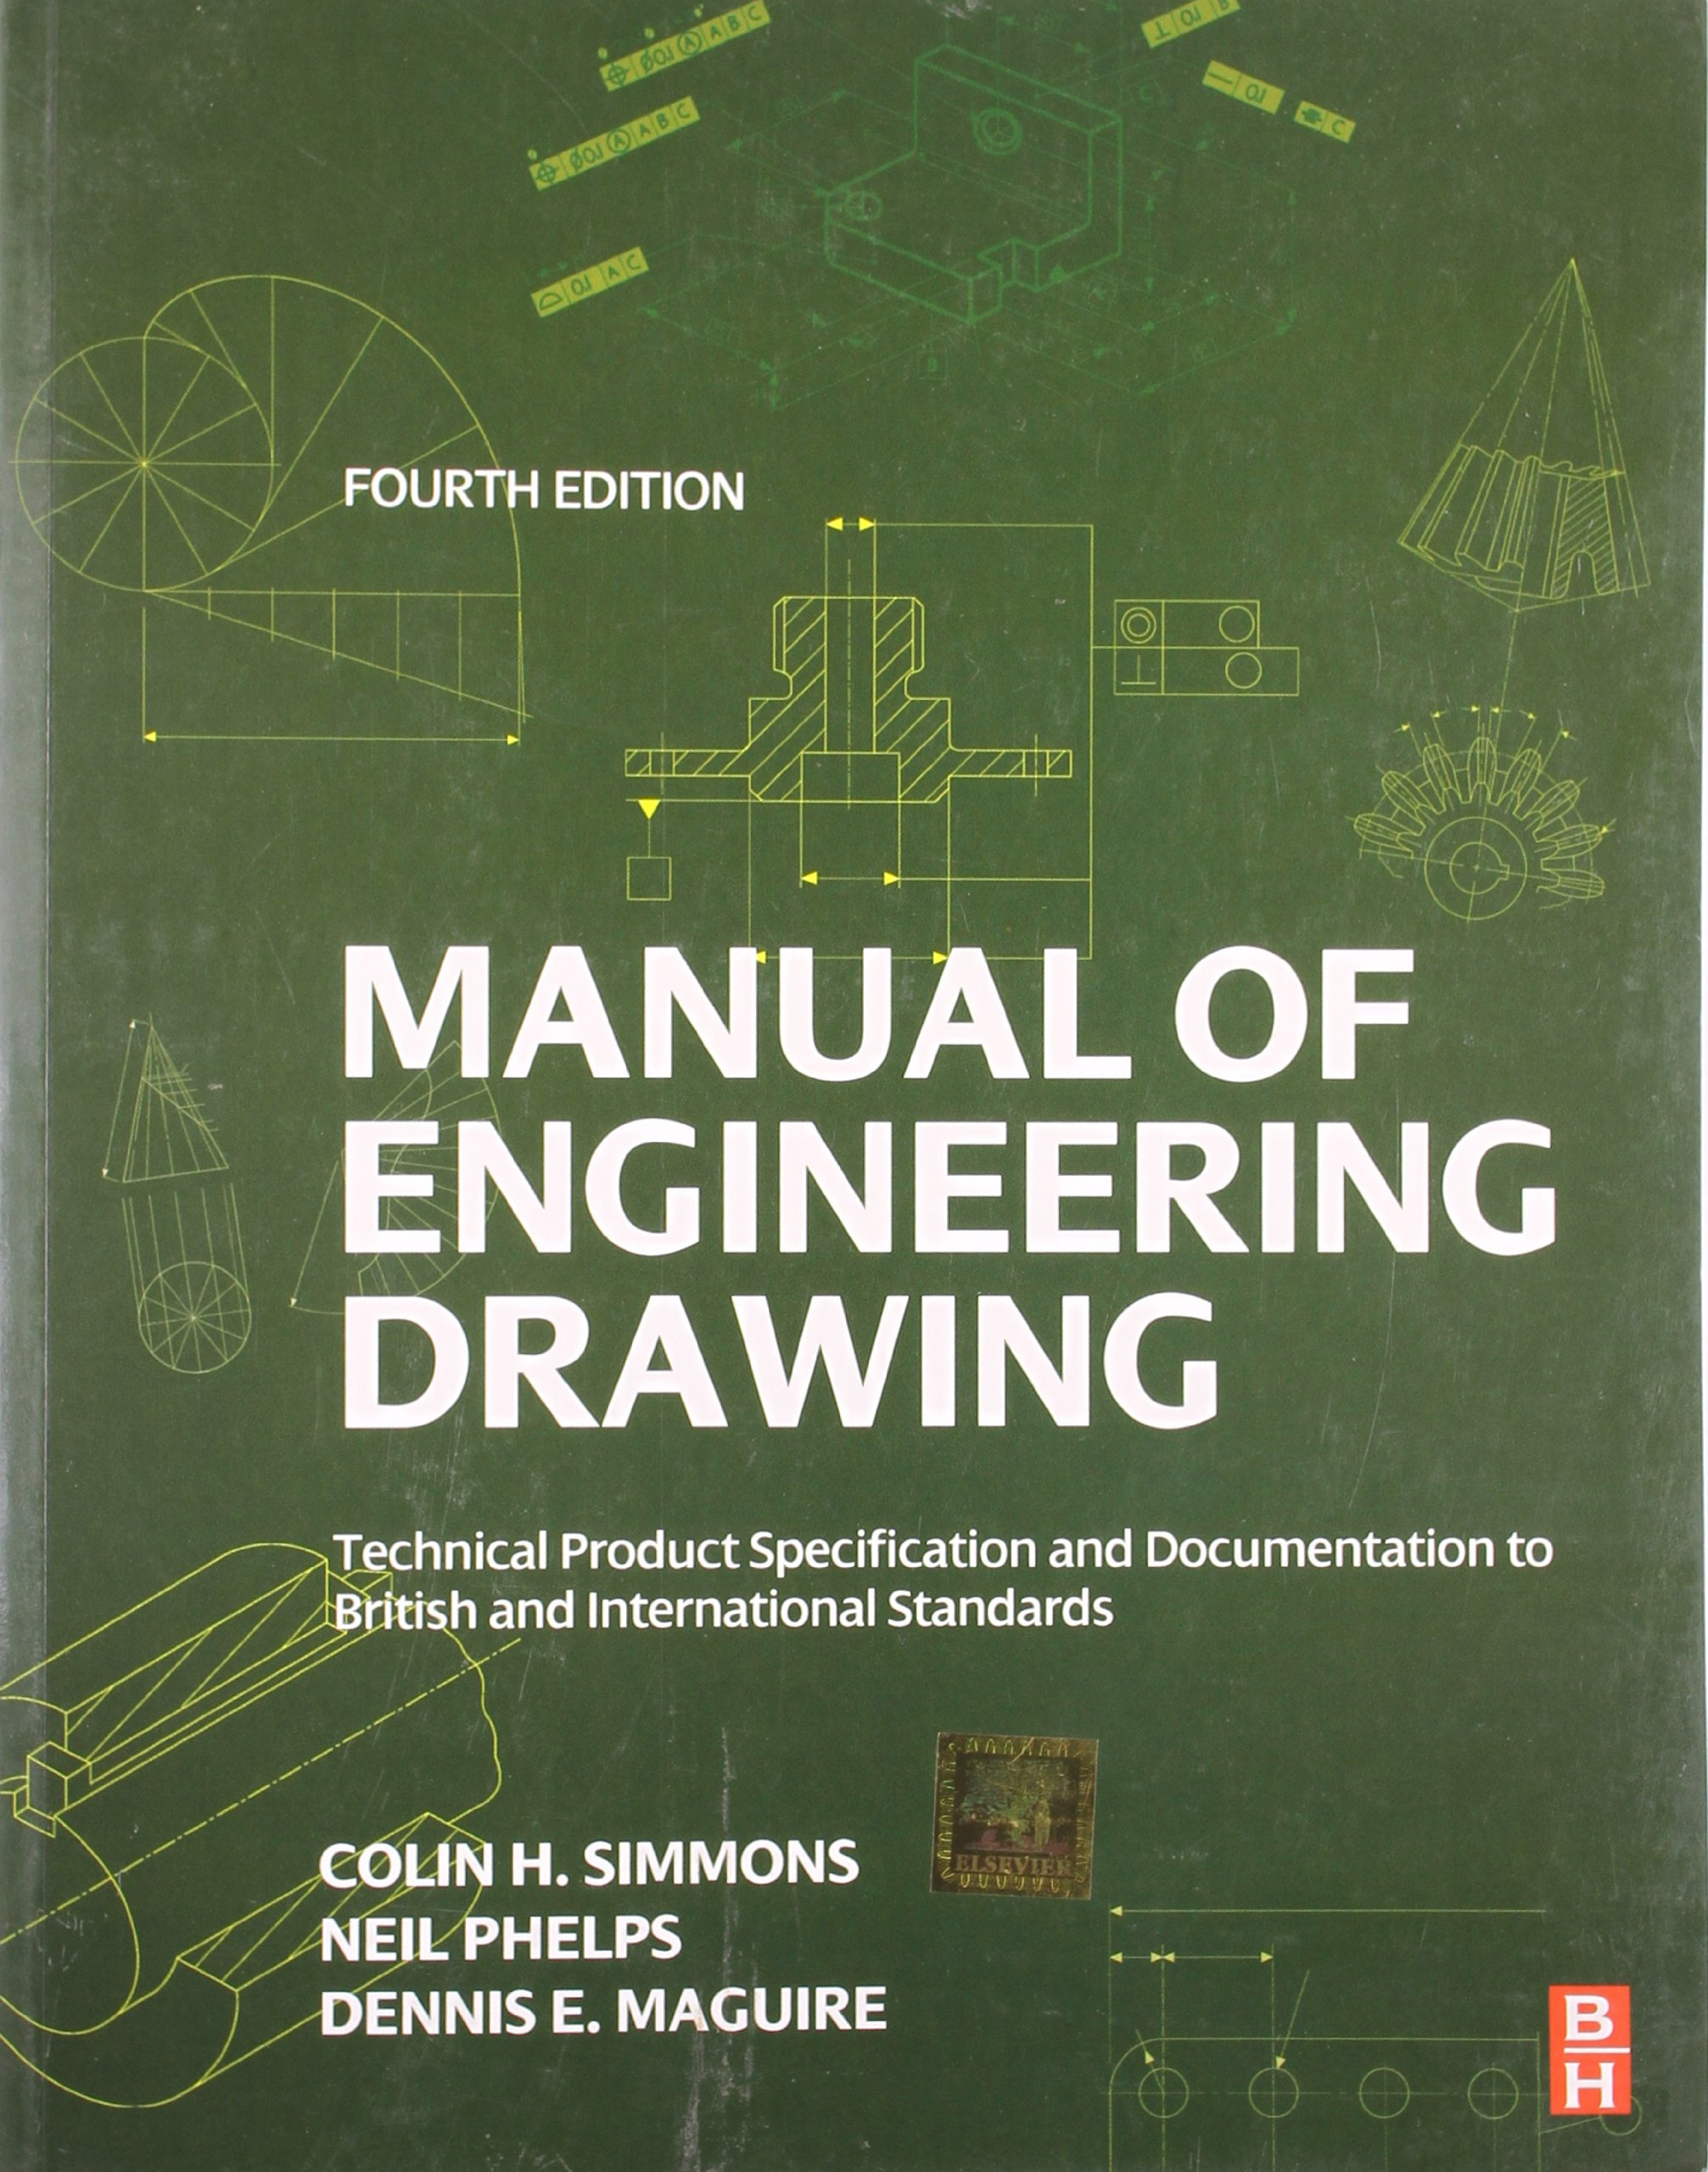 MANUAL OF ENGINEERING DRAWING, 4TH EDITION: Amazon.co.uk: Simmons:  9789382291572: Books